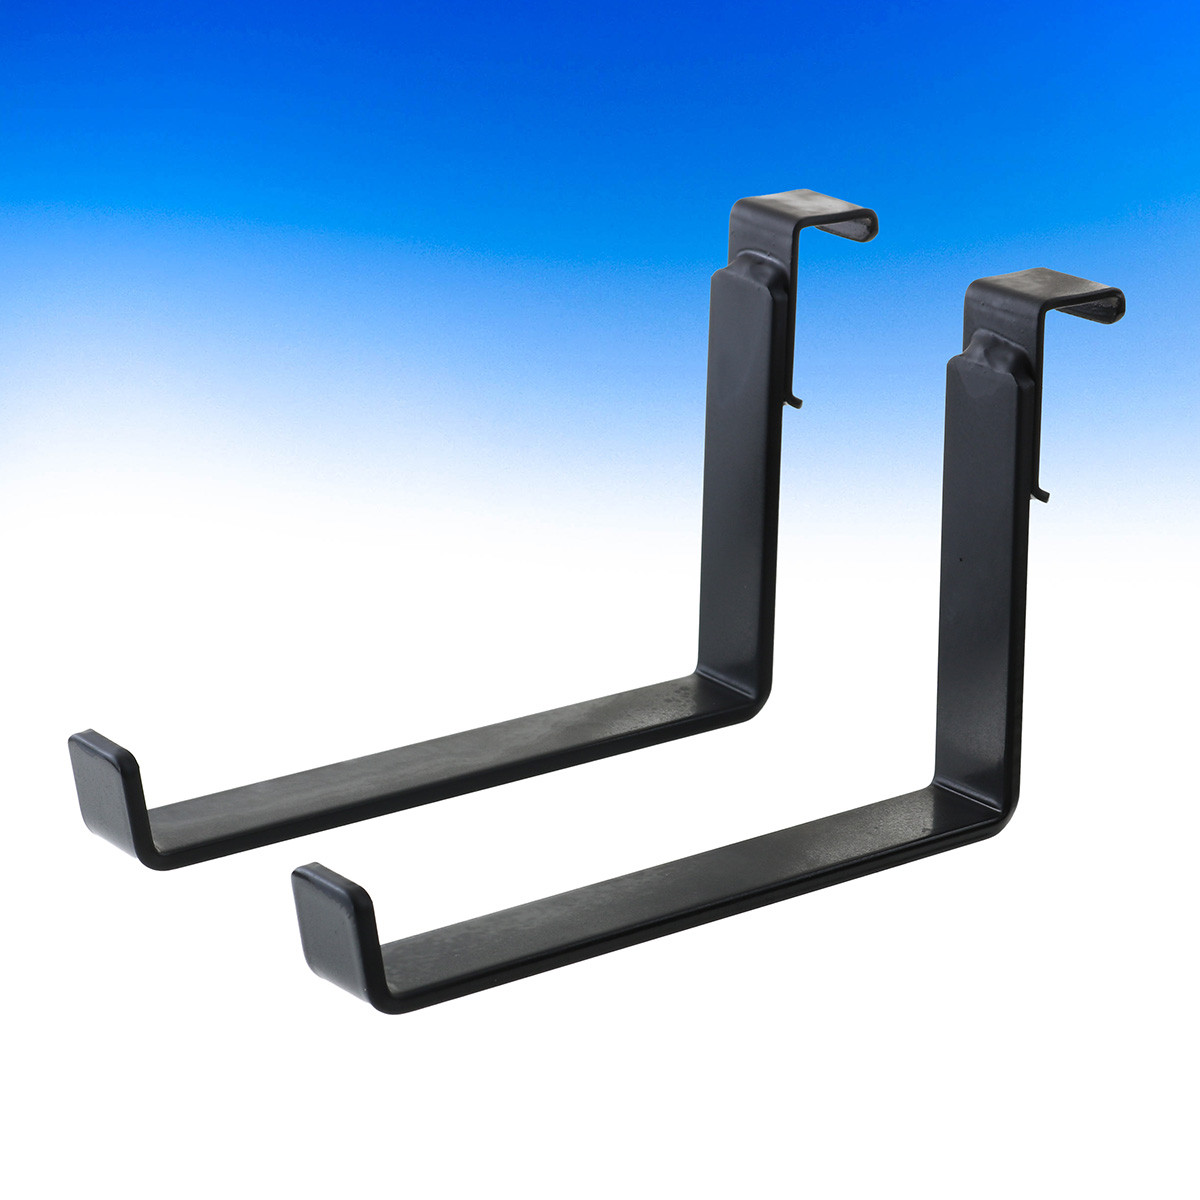 Heavy Duty Brackets by Hold It Mate are secure enough to keep heavy flower boxes in place yet can be moved and reinstalled in minutes.